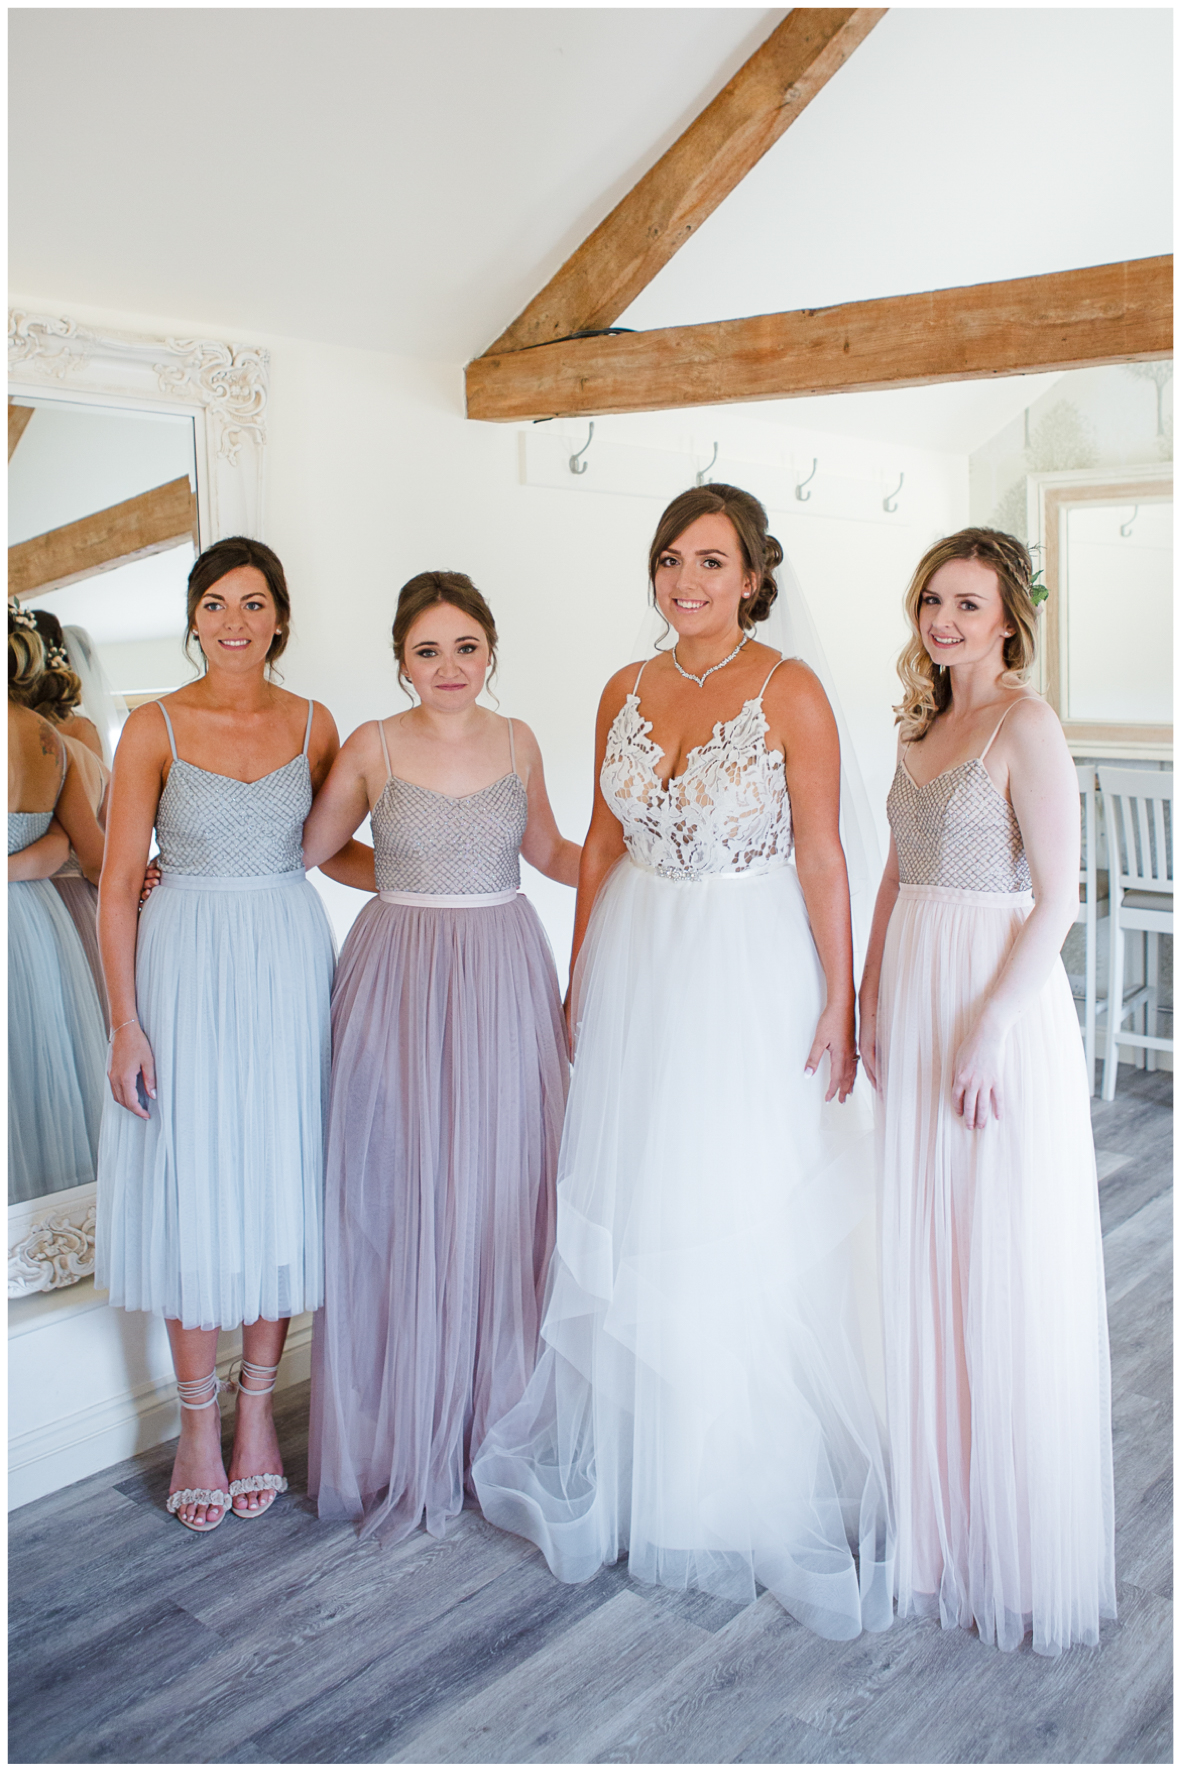 Bride wearing Hayley Paige, bridesmaids Needle & Thread